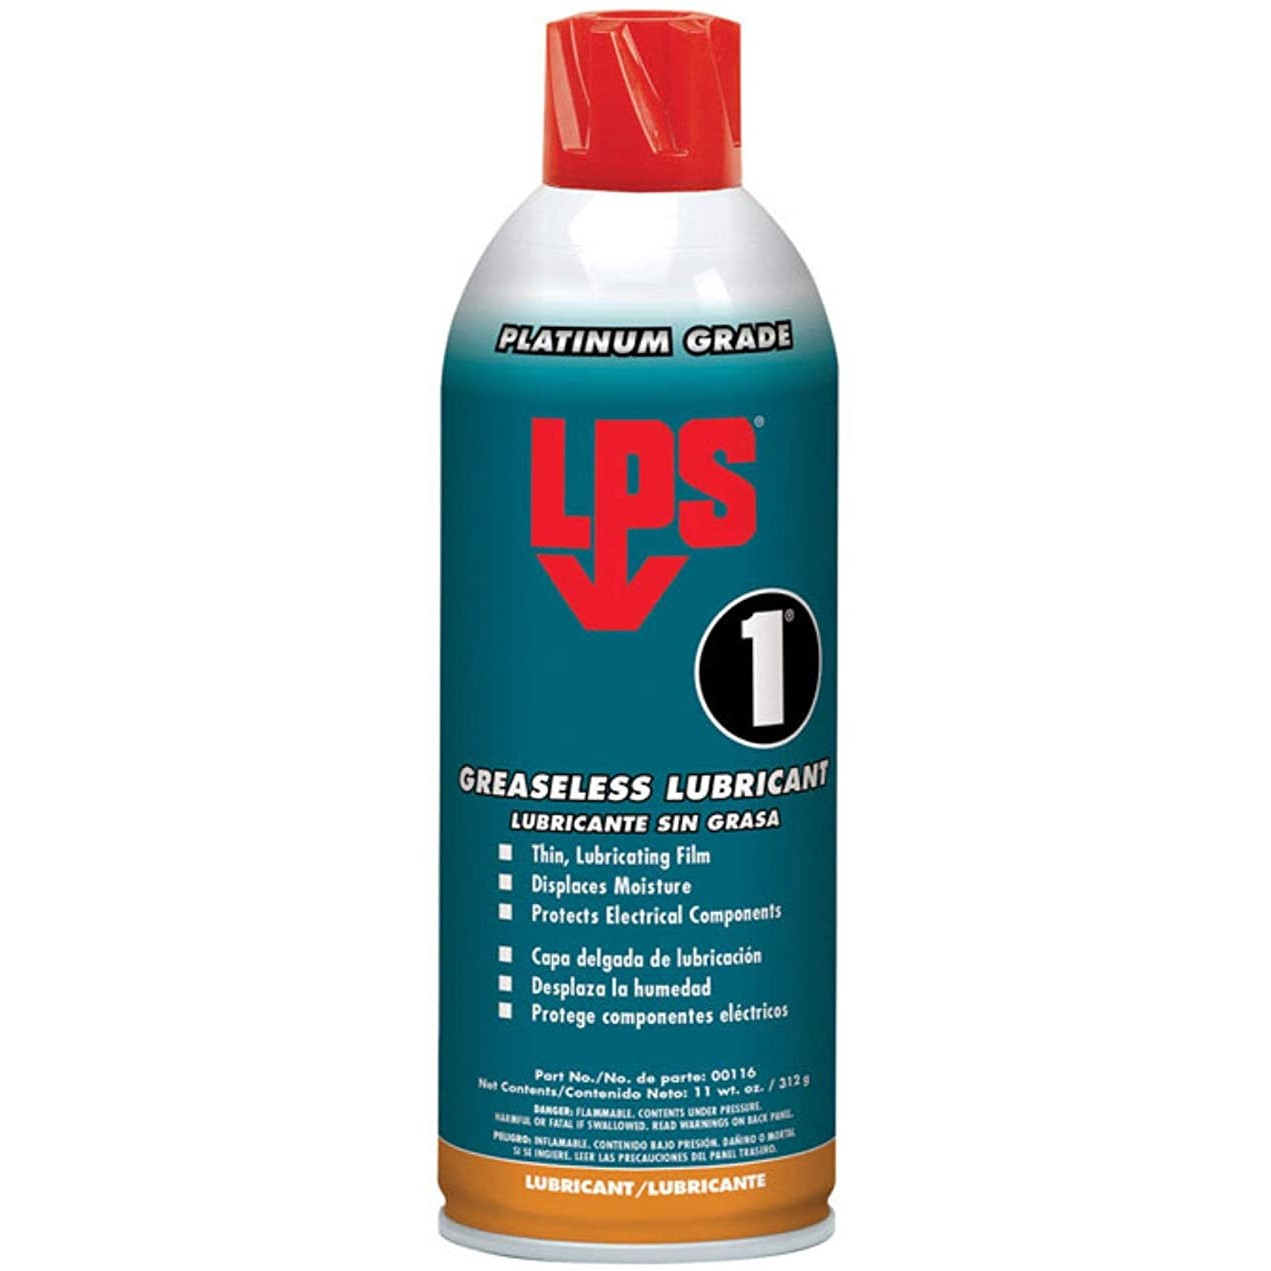 LPS 1 - GREASELESS - 300 ml